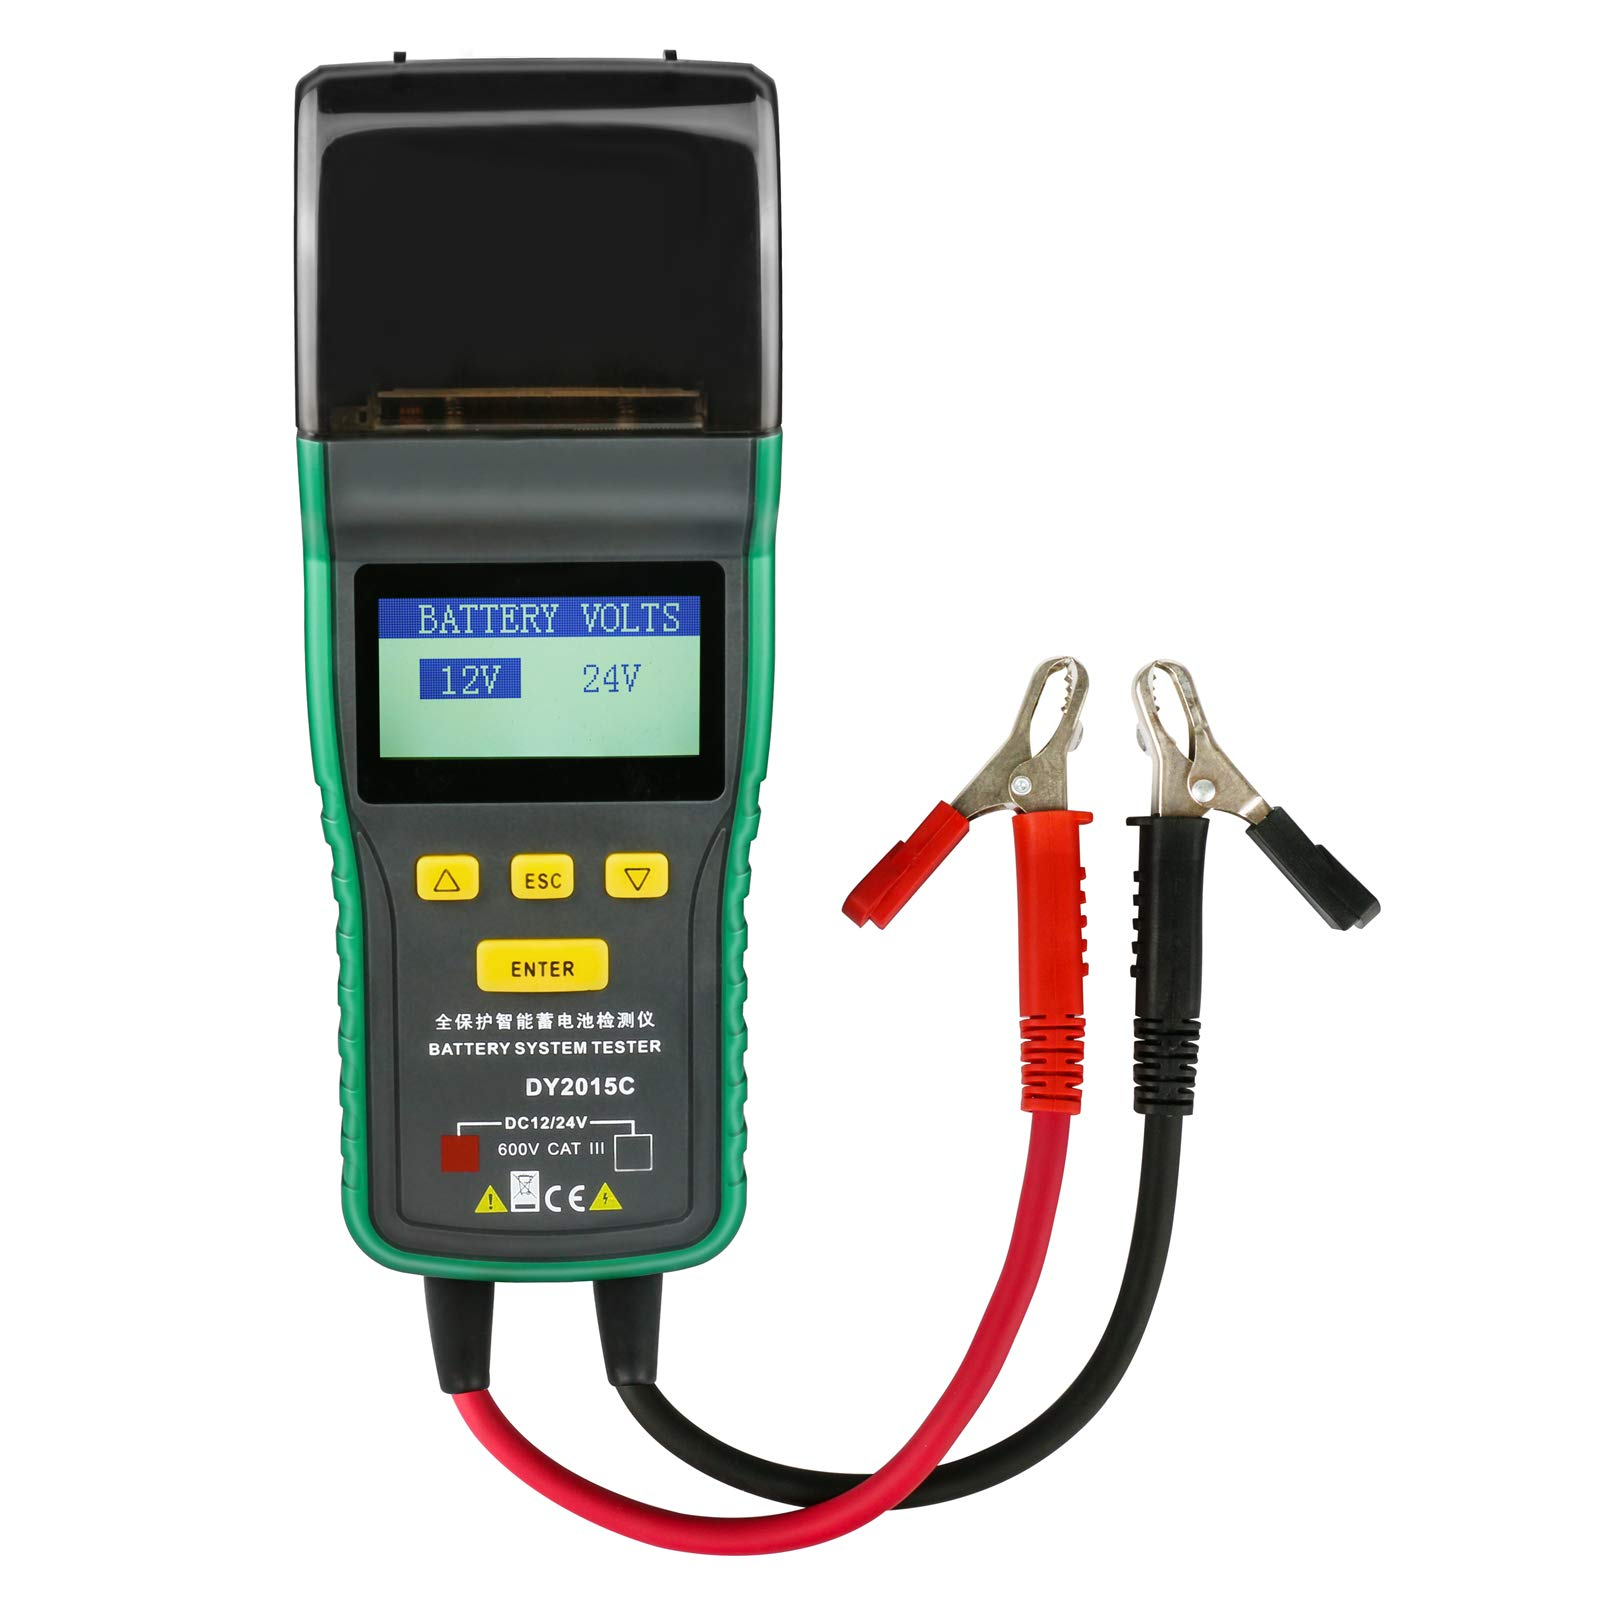 DuoYi 12V/24V Automotive Battery Tester, Lead-Acid Battery Analyzer CCA 100-1700 SOH 0-100% Integrated Printer Diagnostic Tool with Suitcase (DY2015C) by DuoYi (Image #2)